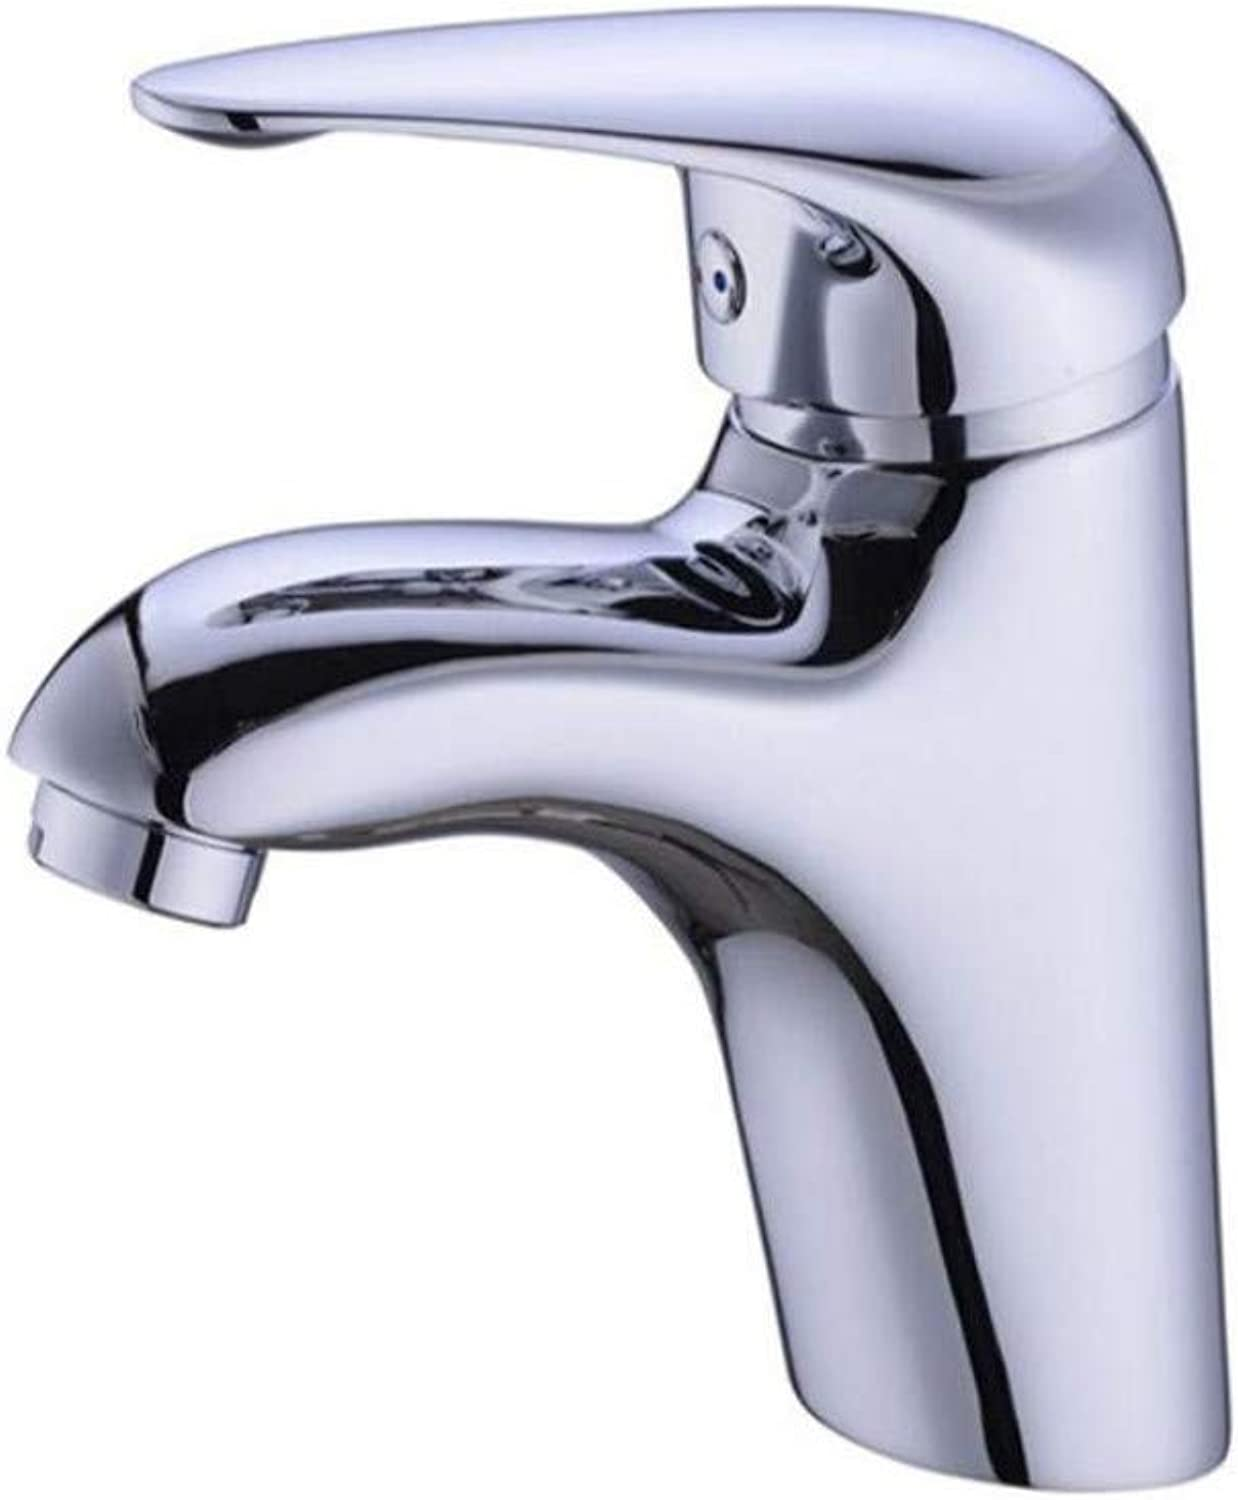 Taps Kitchen Sinknew Products Cold and Hot Lavatory Mixer Short Lever Bathroom Faucet Tap